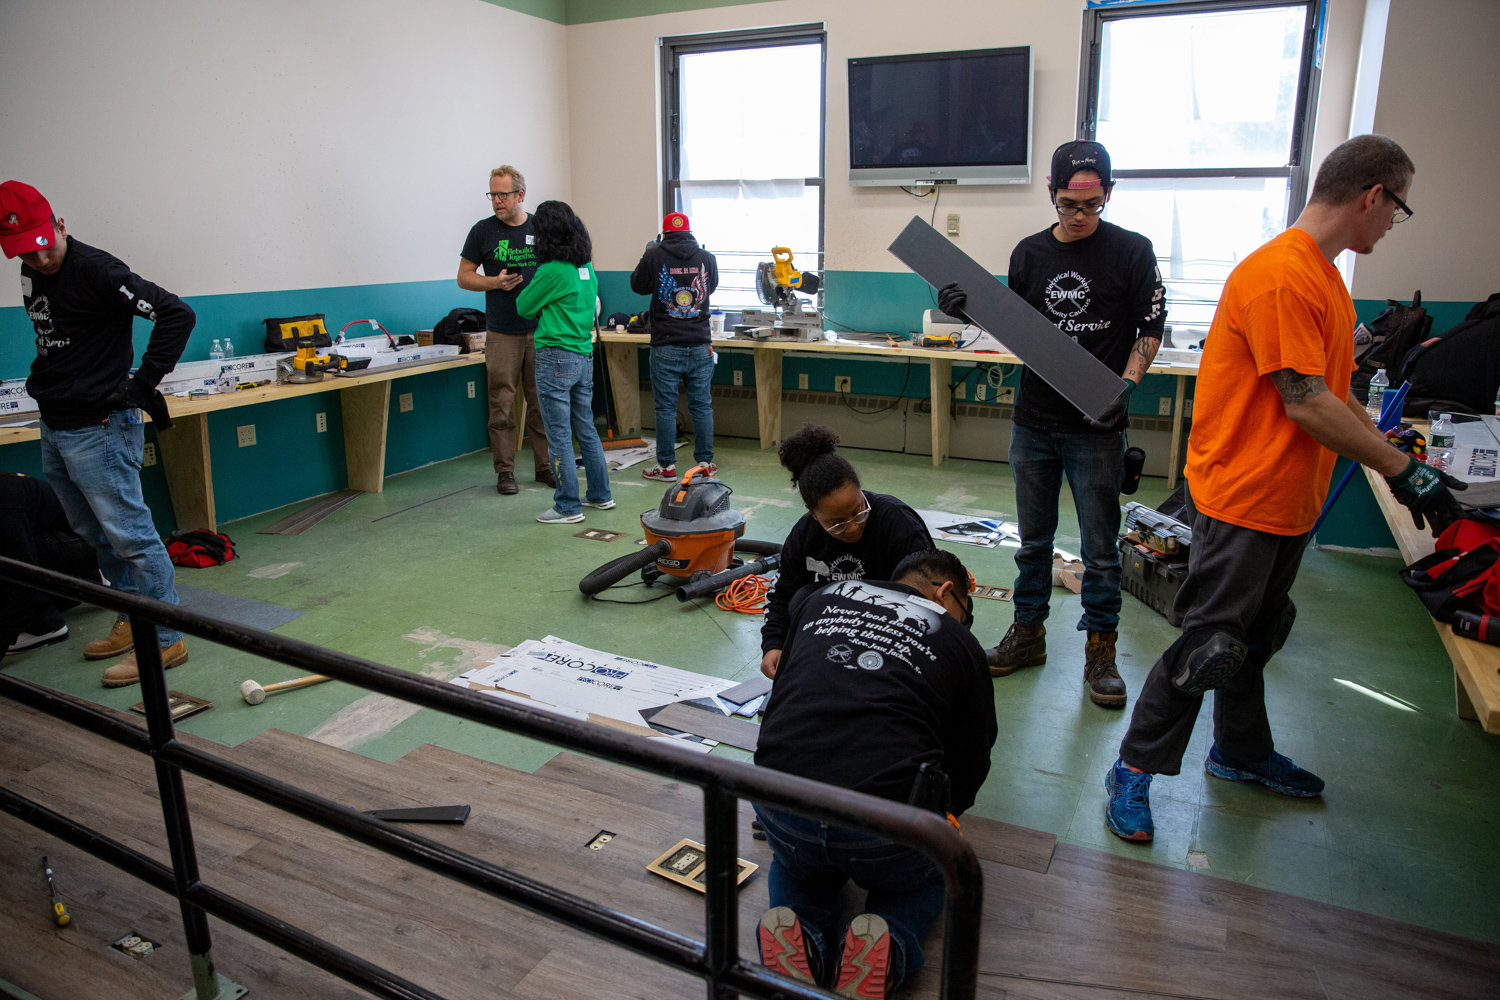 Volunteers from Rebuilding Together NYC and Local Union No. 3 IBEW resurface a classroom floor at the Kingsbridge Heights Community Center.